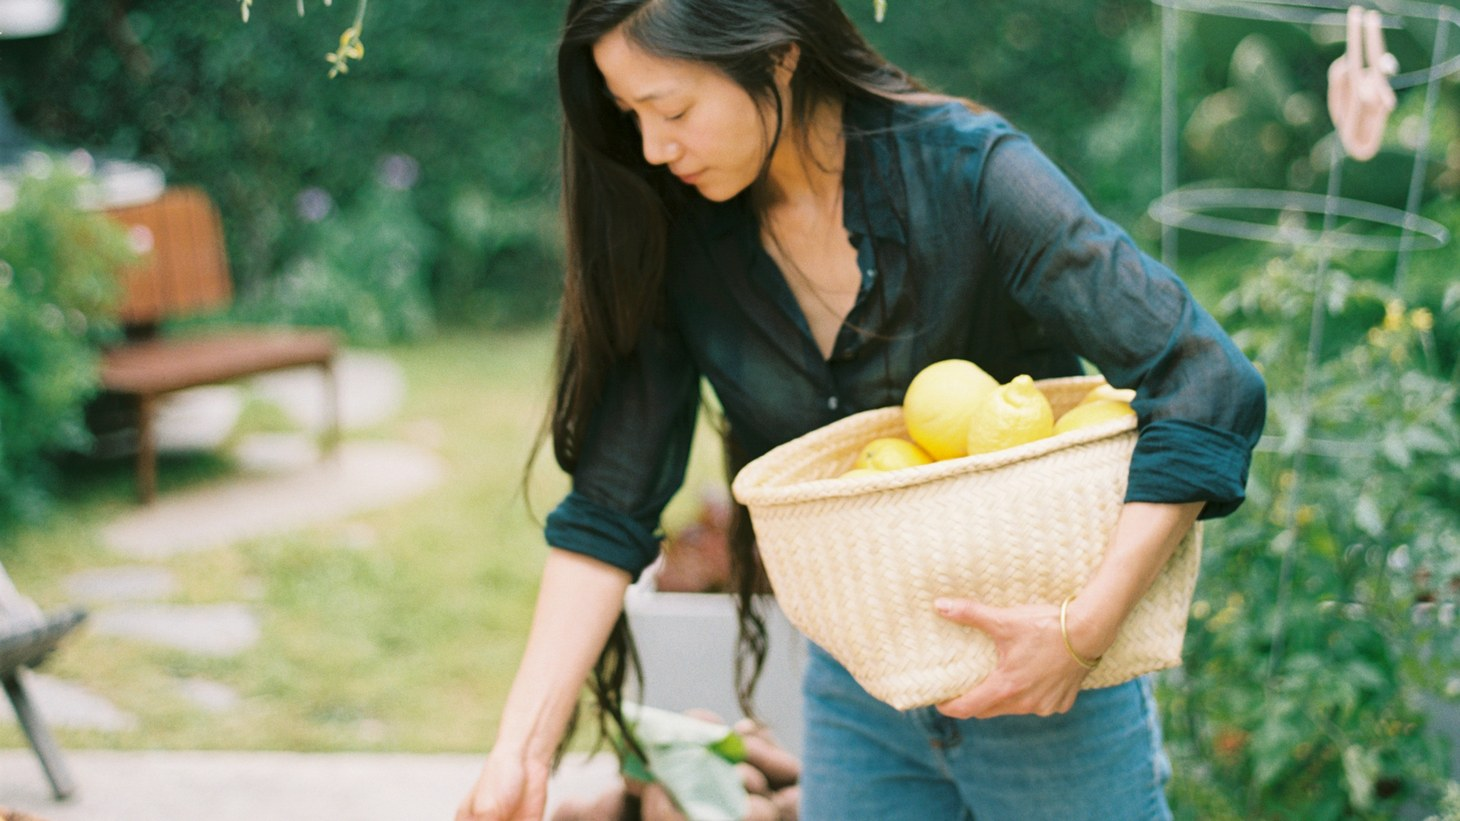 """""""Every dollar is doing more than just consuming,"""" says Saehee Cho of Soon Mini, a food subscription service with a philanthropic bent."""